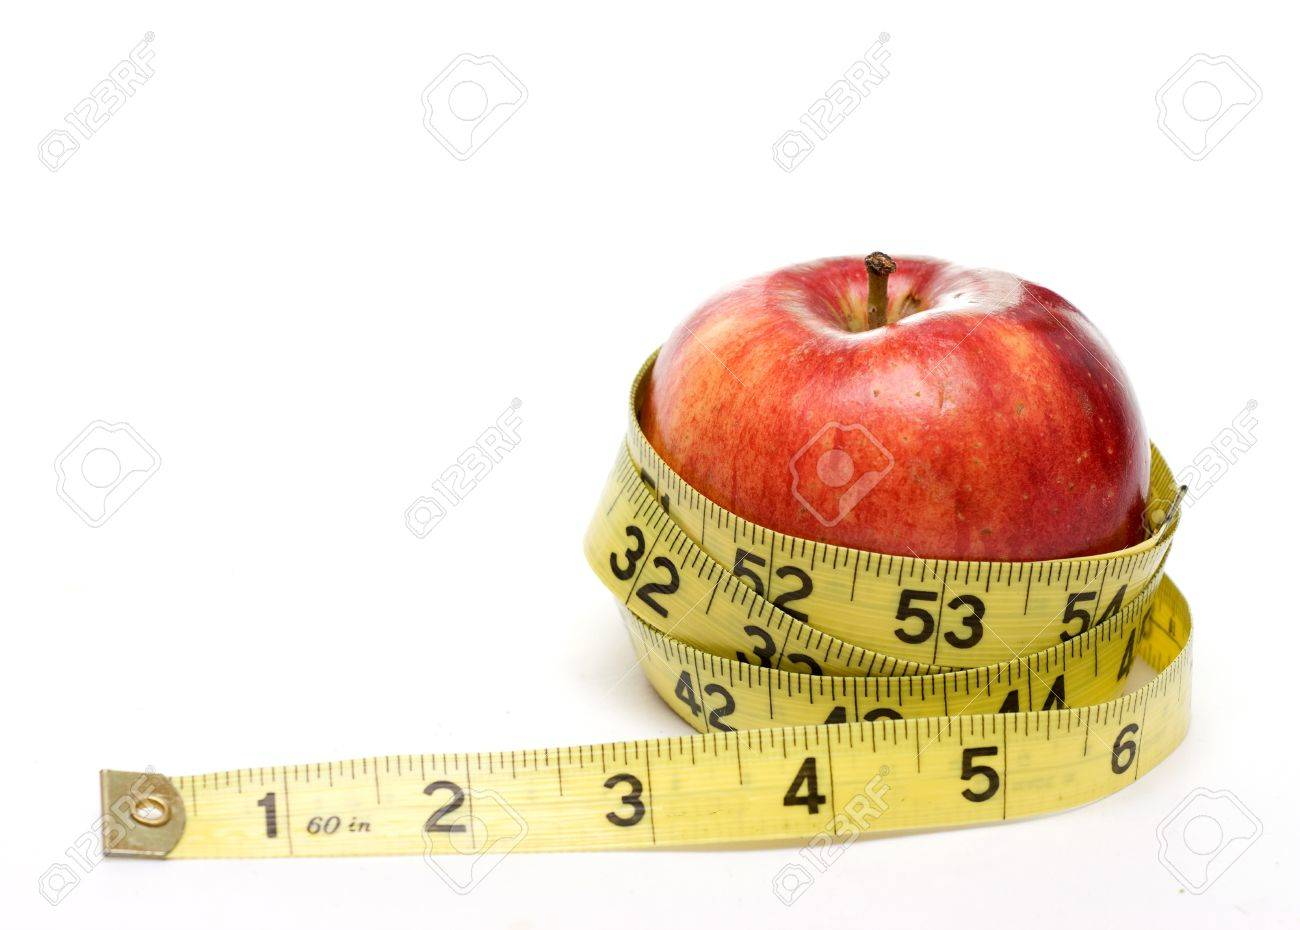 Red apple and measuring tape isolated on white background - diet, health concept. Stock Photo - 4146864